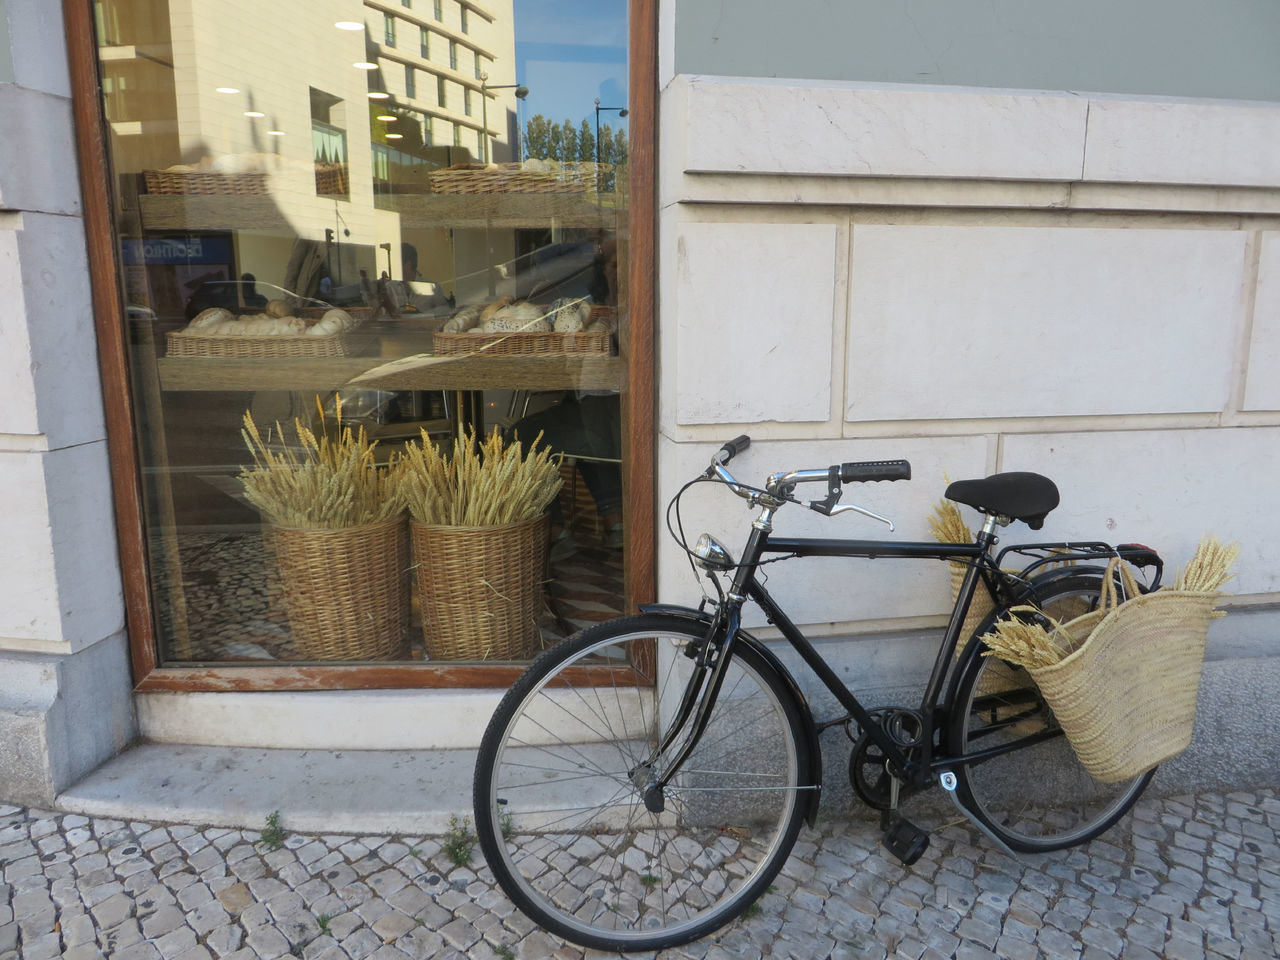 Exploring Lisbon in 15 hours Bicycle Building Exterior City City Break Day Day Trip Lisbon - Portugal Mode Of Transport No People Outdoors Sight Seeing Stationary Transportation